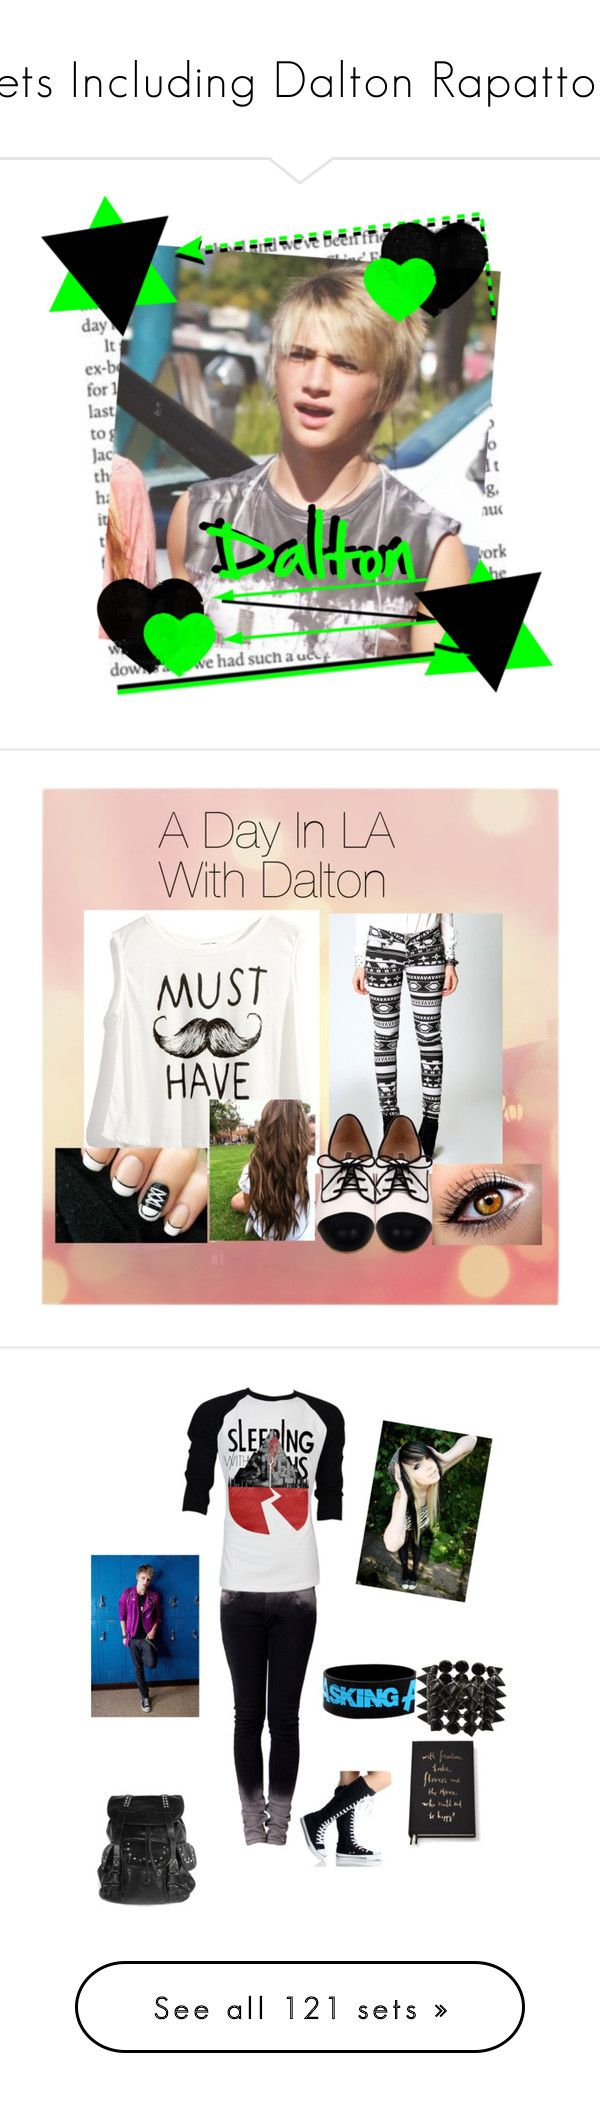 """Sets Including Dalton Rapattoni"" by dalton-rapattoni-outfits-imagine ❤ liked on Polyvore featuring art, Le Bunny Bleu, im5, dalton rapattoni, Retrò, Kate Spade, Eddie Borgo, Dorothy Perkins, Report and Blonde + Blonde"